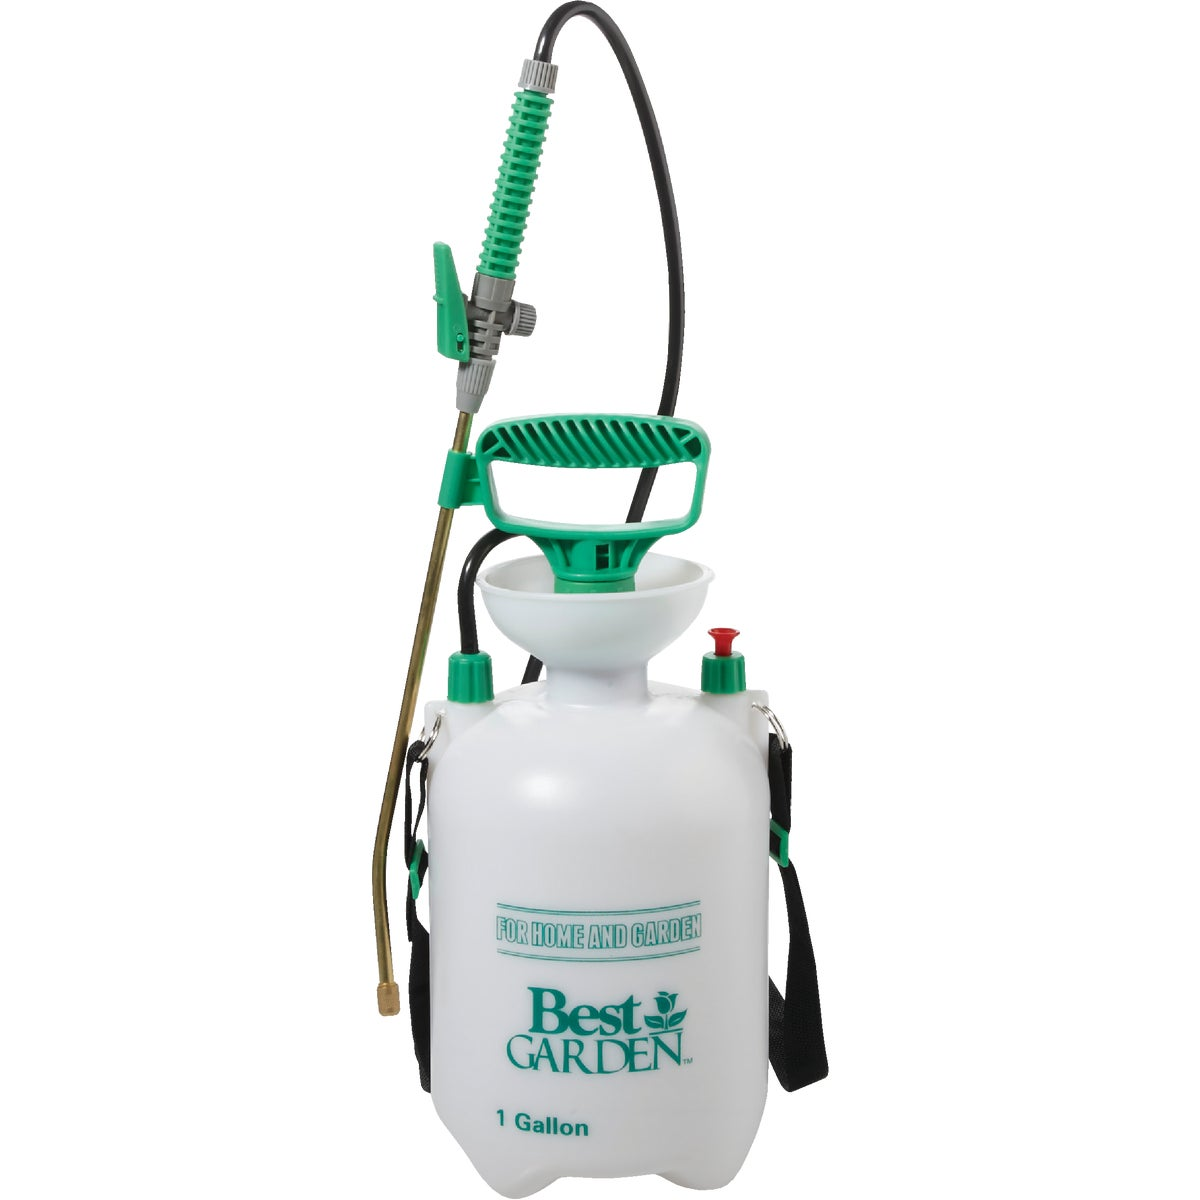 1GAL TANK SPRAYER - SX-4B by Do it Best